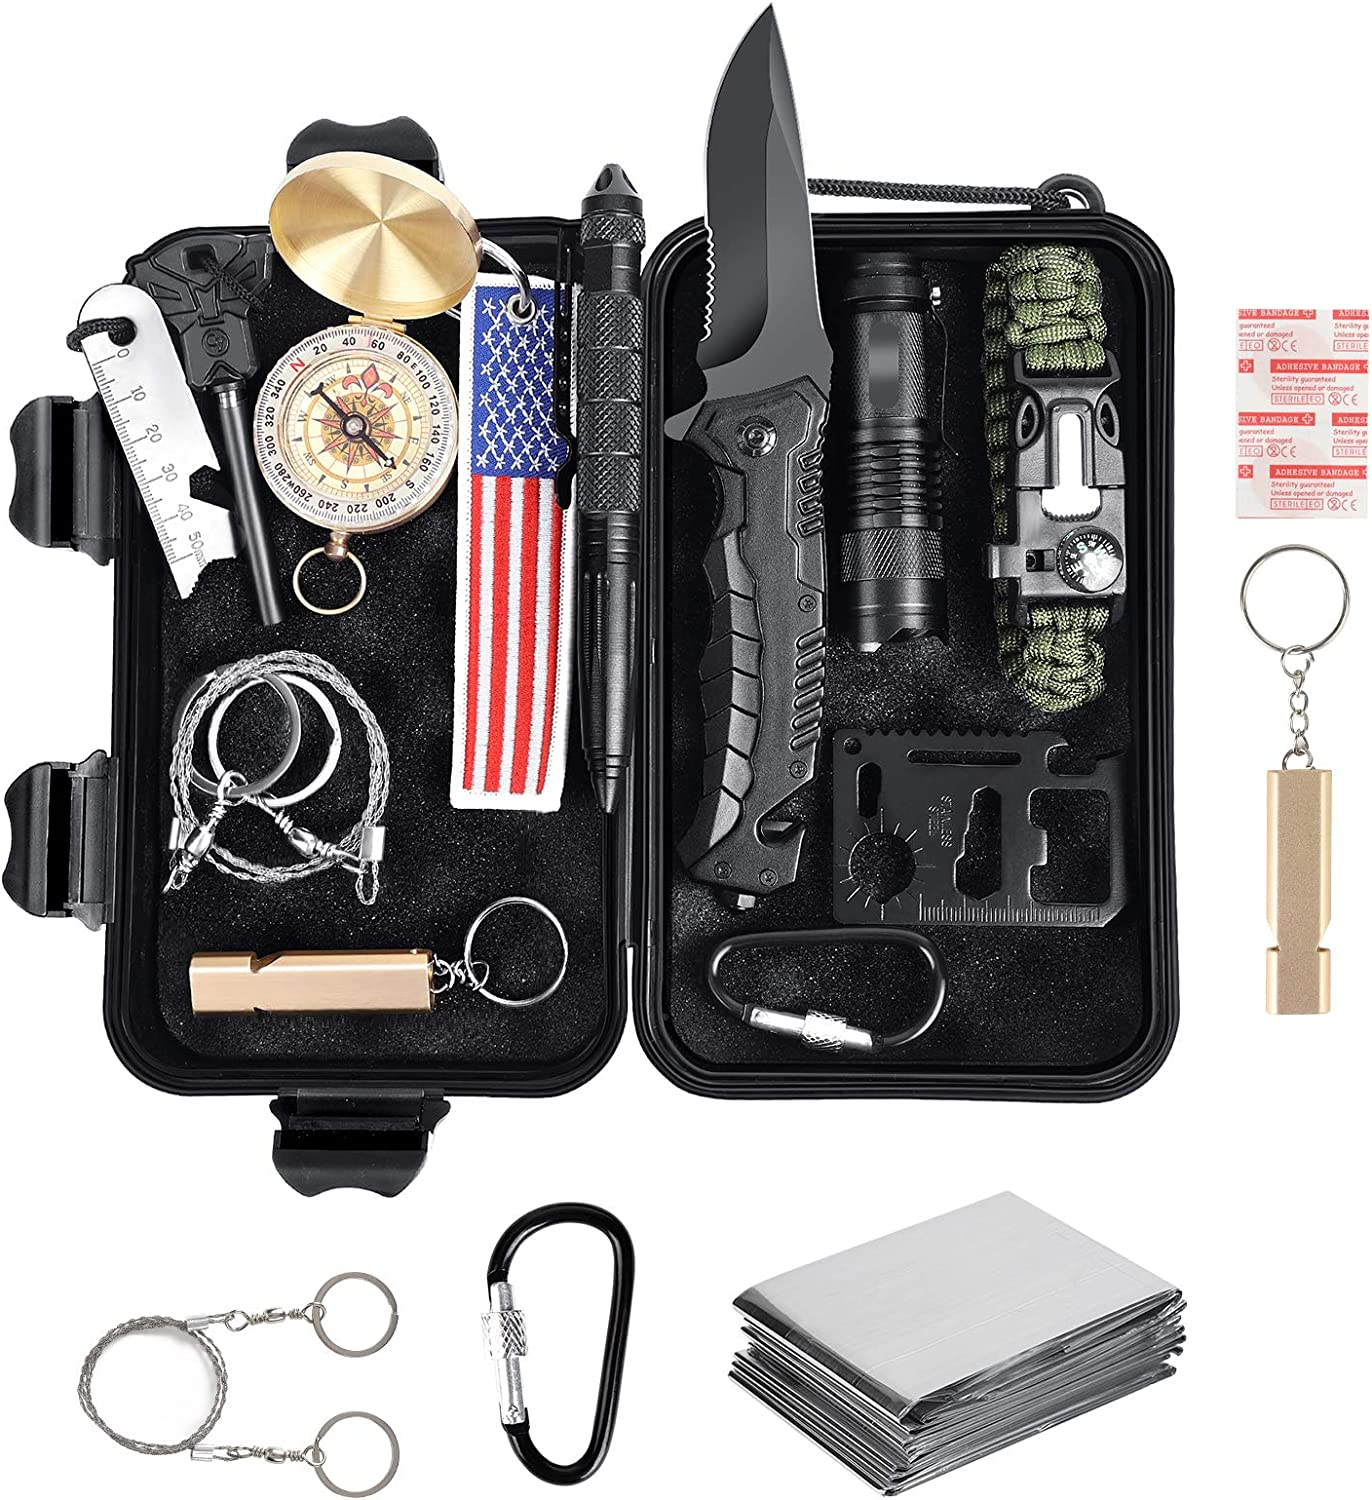 TEQUIERO Survival Kit 15 PCS,Outdoor First Aid Gear Emergency Tool Kits for Camping Boat Hunting Hiking Home Car Earthquake and Adventures